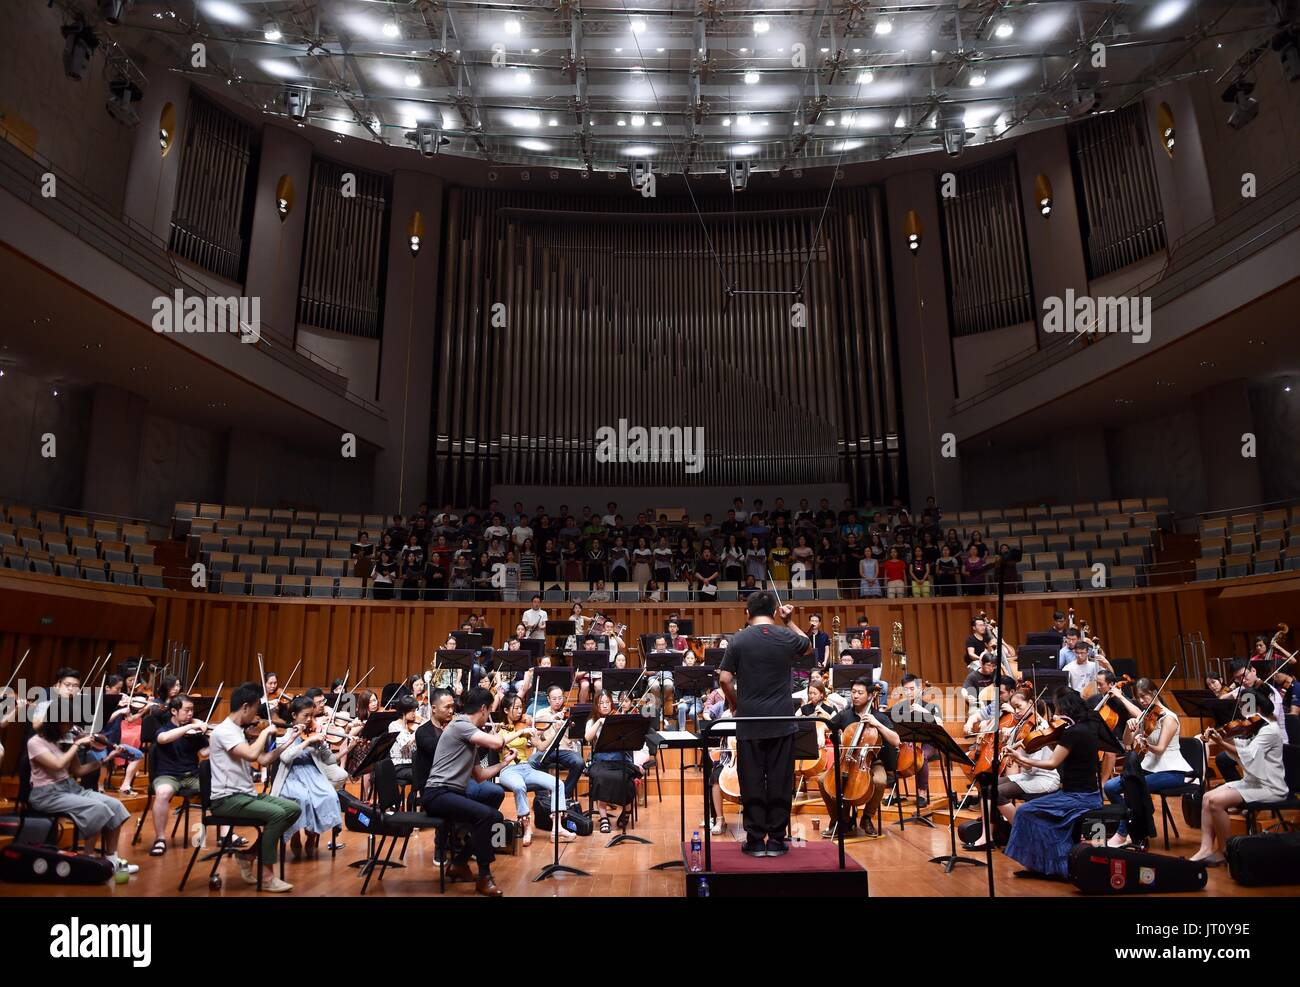 Beijing, China. 7th Aug, 2017. China National Center for the Performing Arts(NCPA) Chorus and Orchestra rehearse 'Ode to Joy' with conductor Lu Jia in Beijing, capital of China, Aug. 7, 2017. NCPA invited media and more than 110 audience to the rehearsal on Monday. From August 8th to 9th, Lu Jia will conduct NCPA Orchestra and Chorus to interpret Beethoven's Symphony No. 9 in D Minor, also known as 'the Choral'. Credit: Luo Xiaoguang/Xinhua/Alamy Live News - Stock Image